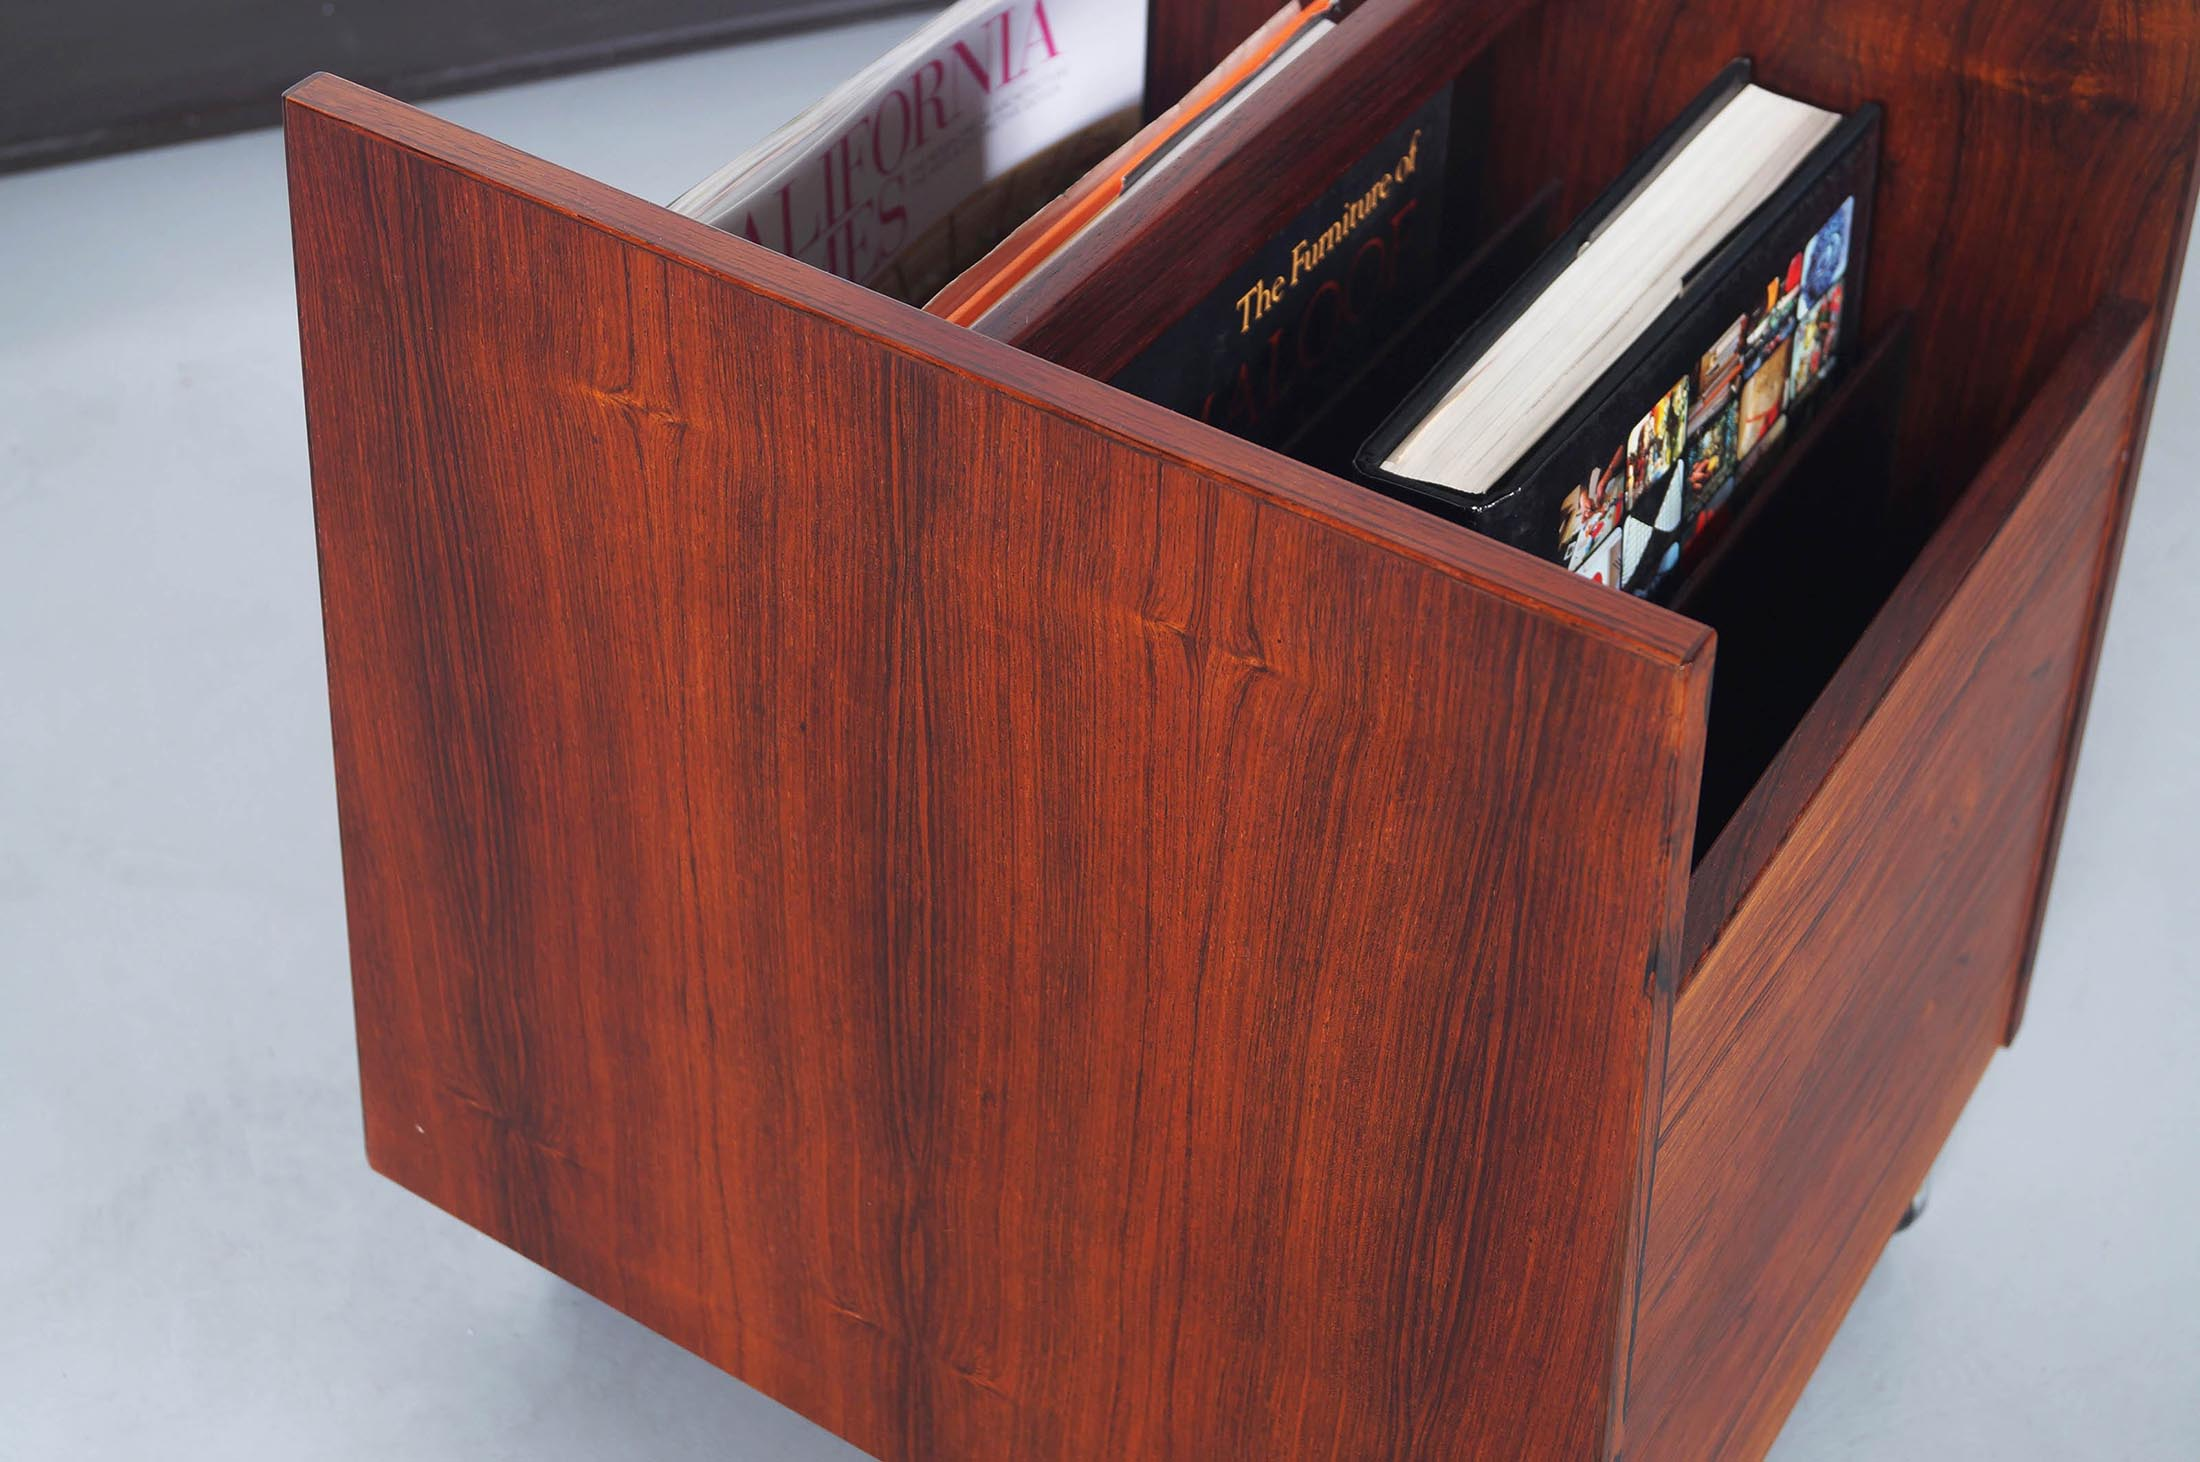 Danish Rosewood Rolling Magazine Stand by Rolf Hesland